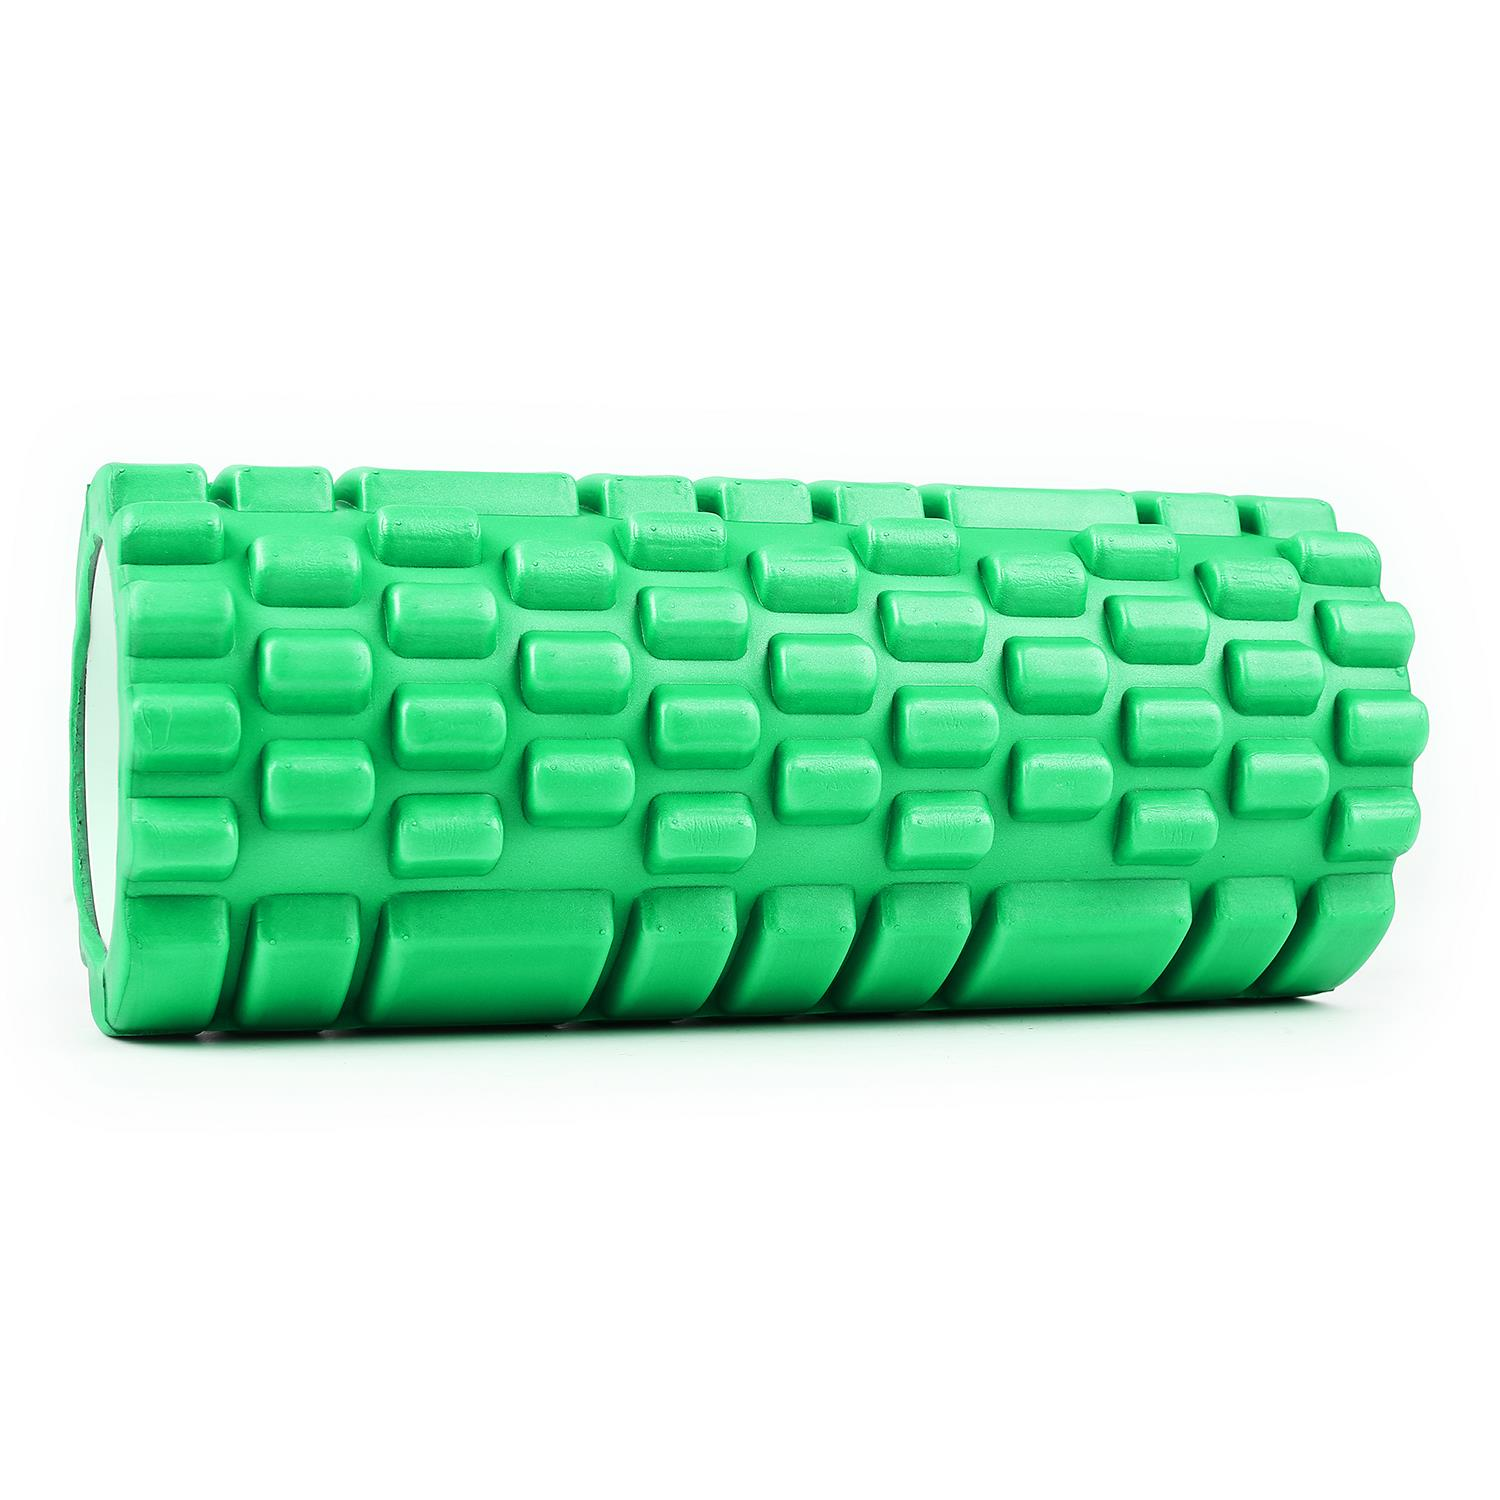 Rullo-Schiuma-Capital-Sport-Yoga-Pilates-Foam-Roller-Trigger-Point-Massaggio miniatura 1